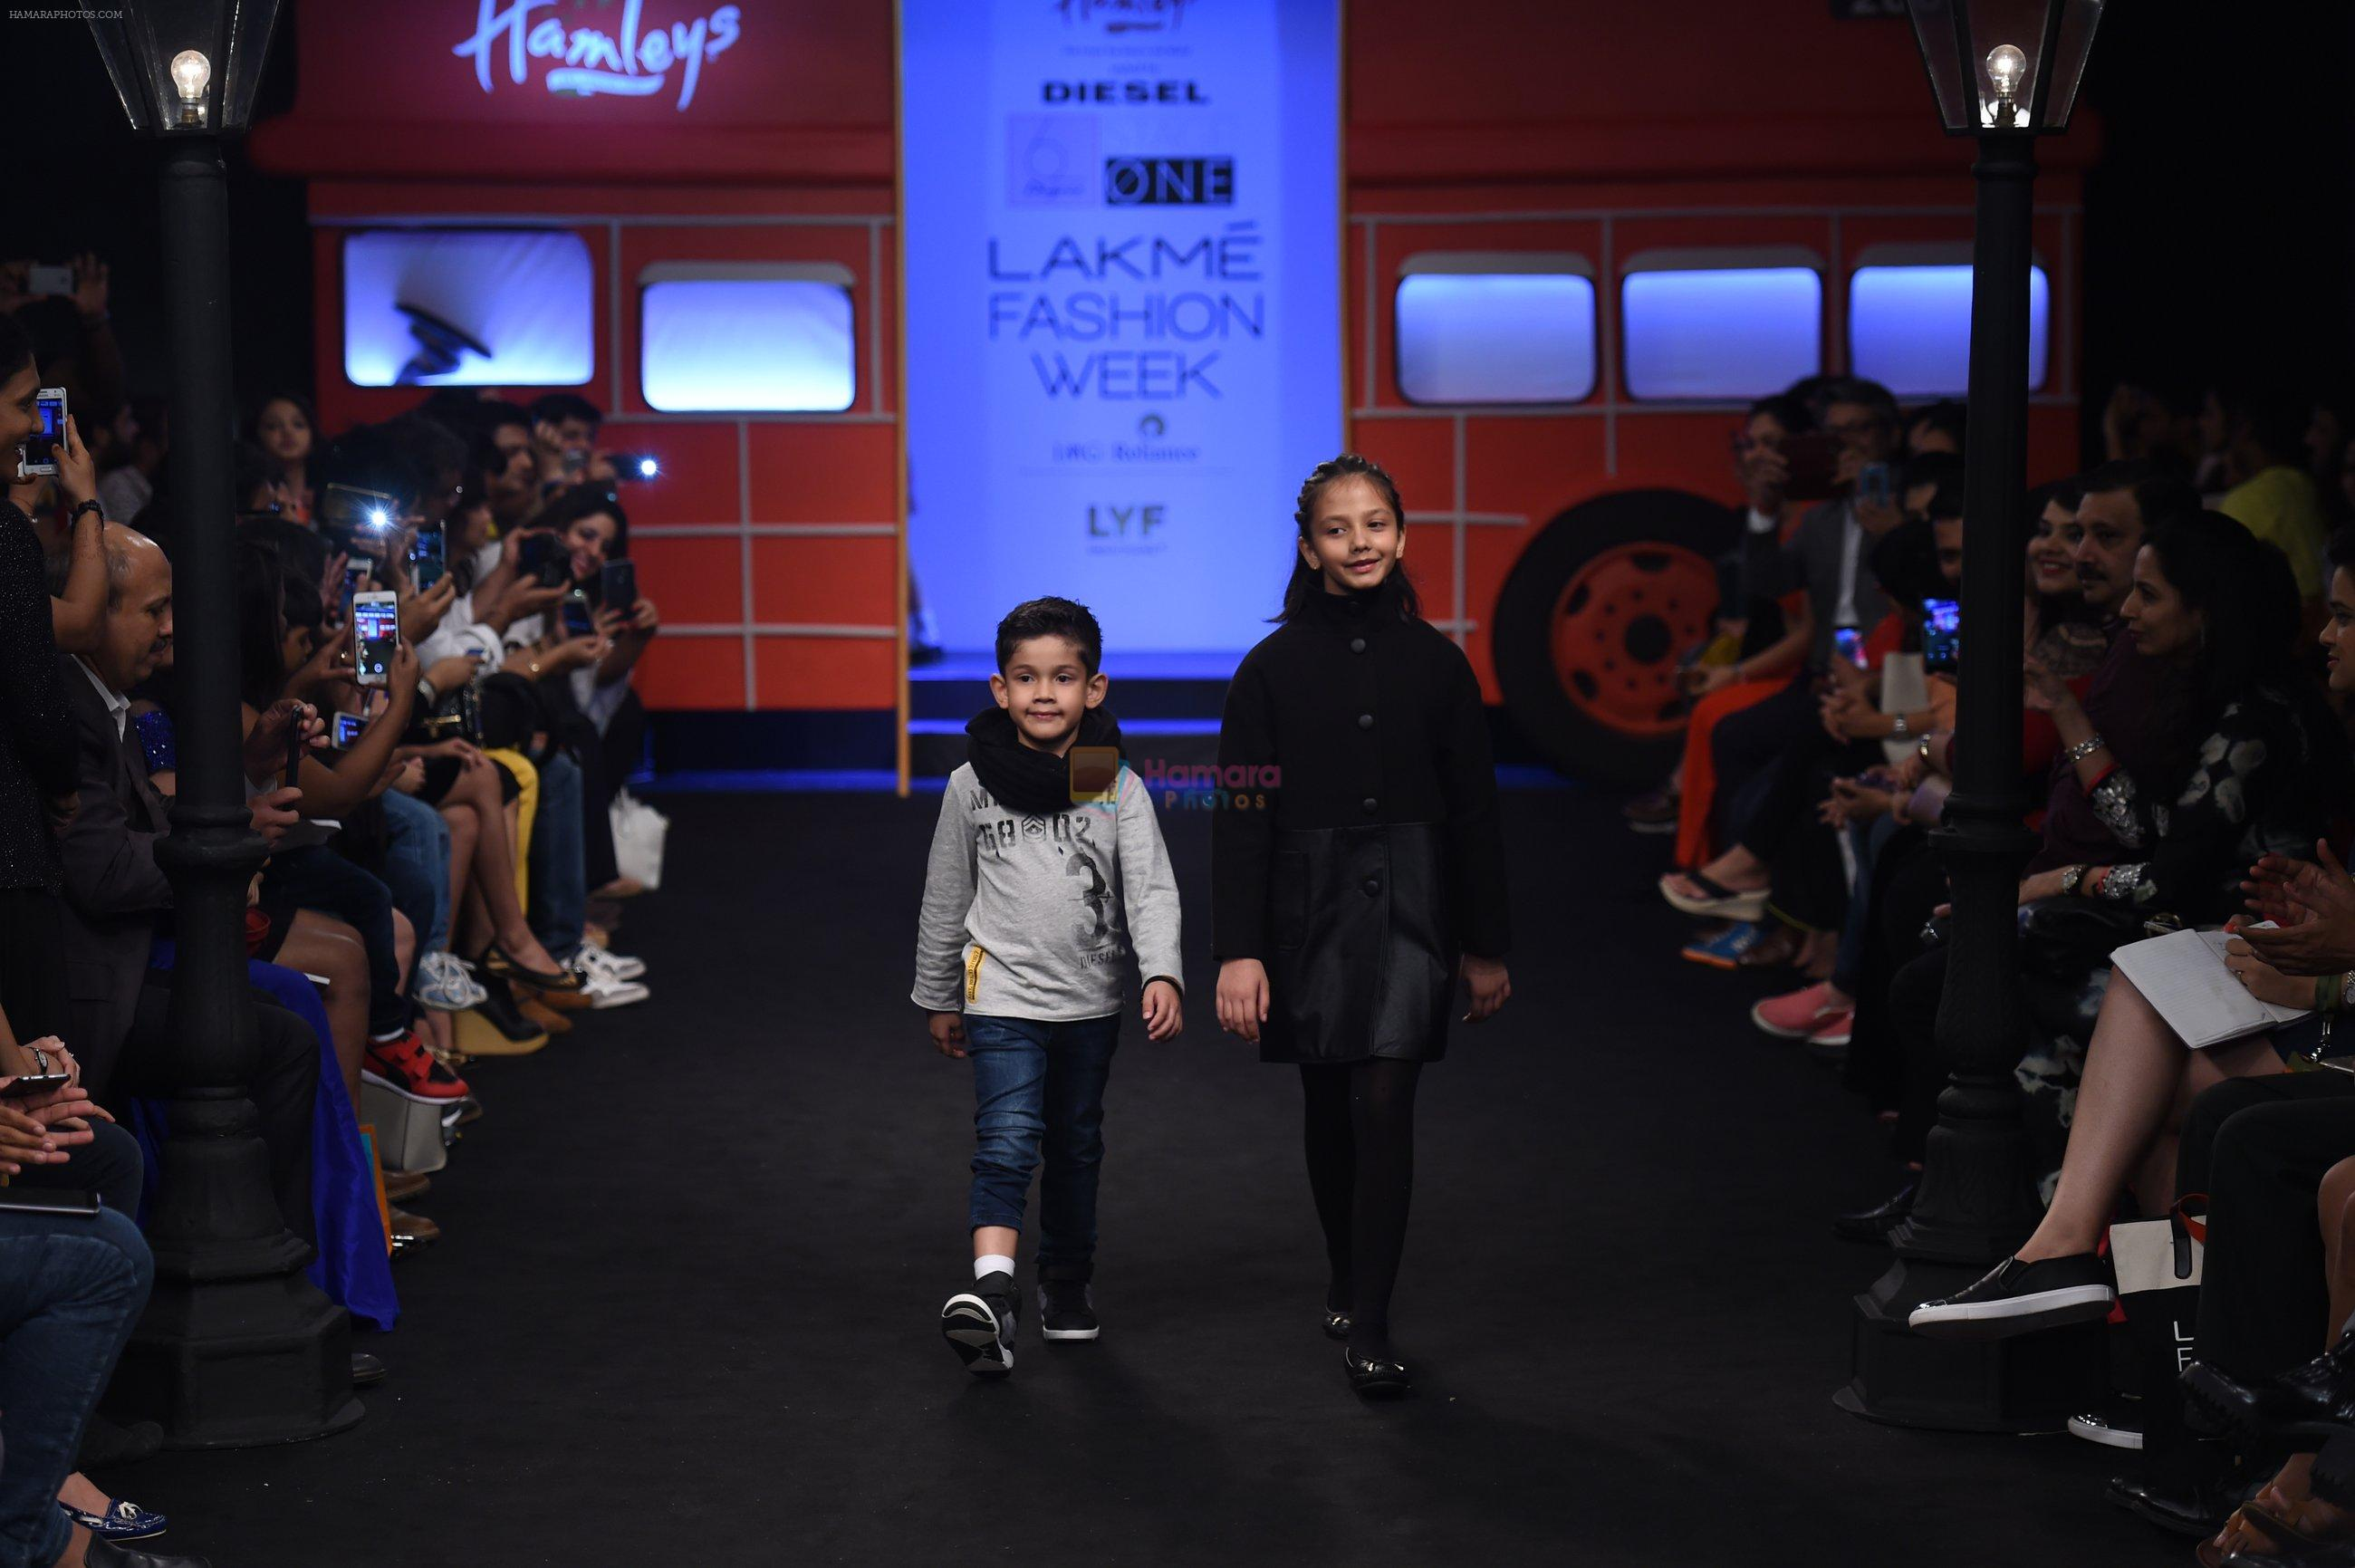 Model walk the ramp for The Hamleys Show styled by Diesel Show at Lakme Fashion Week 2016 on 28th Aug 2016